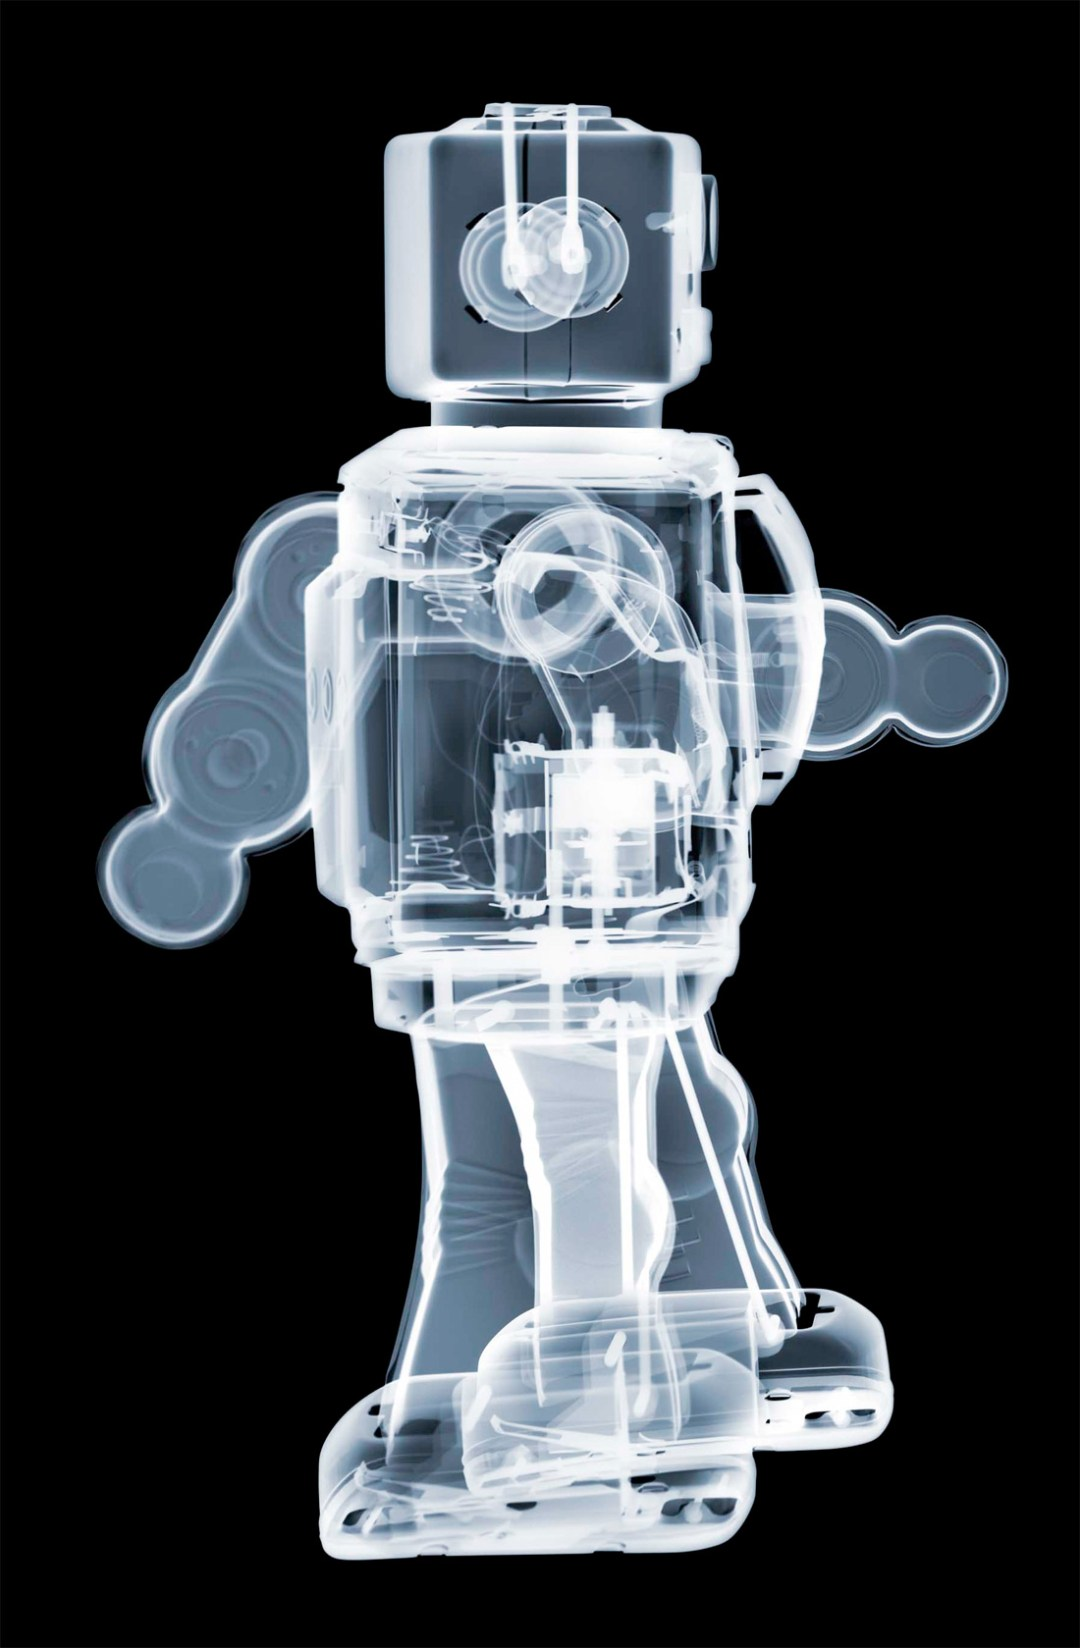 Nick Veasey :: X-Ray Photos (2)